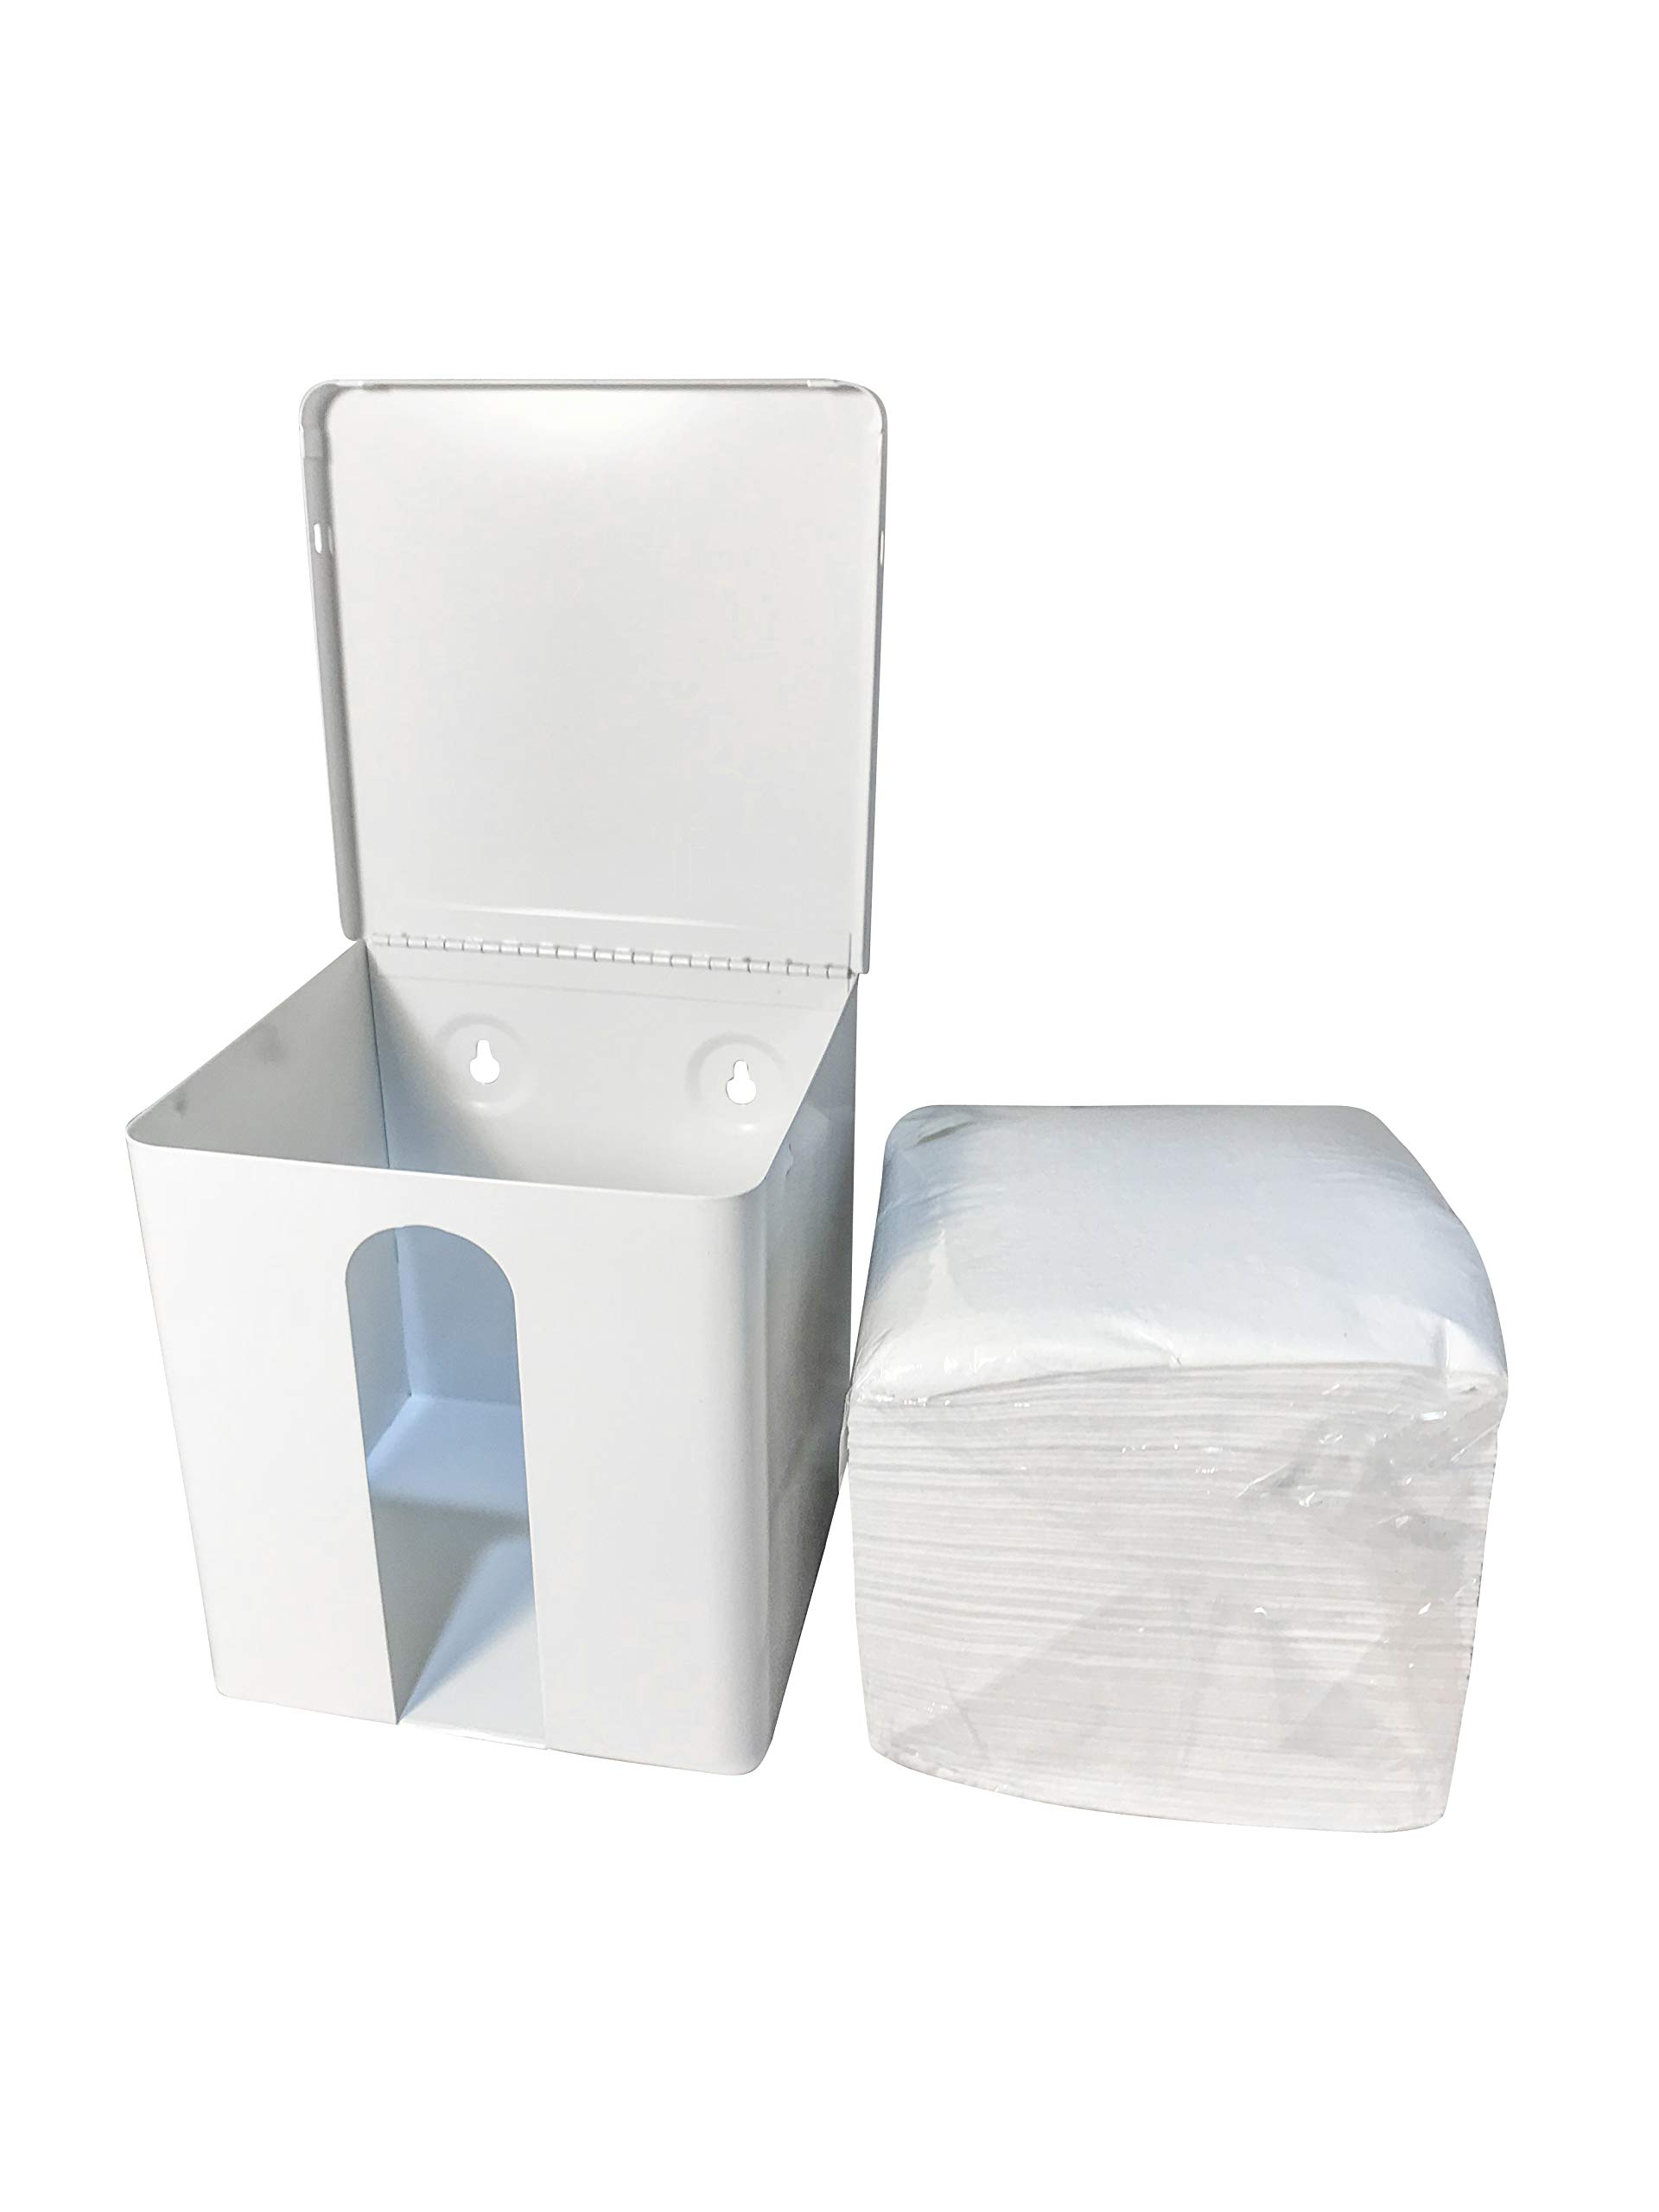 Disposable Washcloth Dispenser (6.75 x 6.75 x 7.12, White) Holds 1/4 fold Dry washcloths up to 13'' x 13''